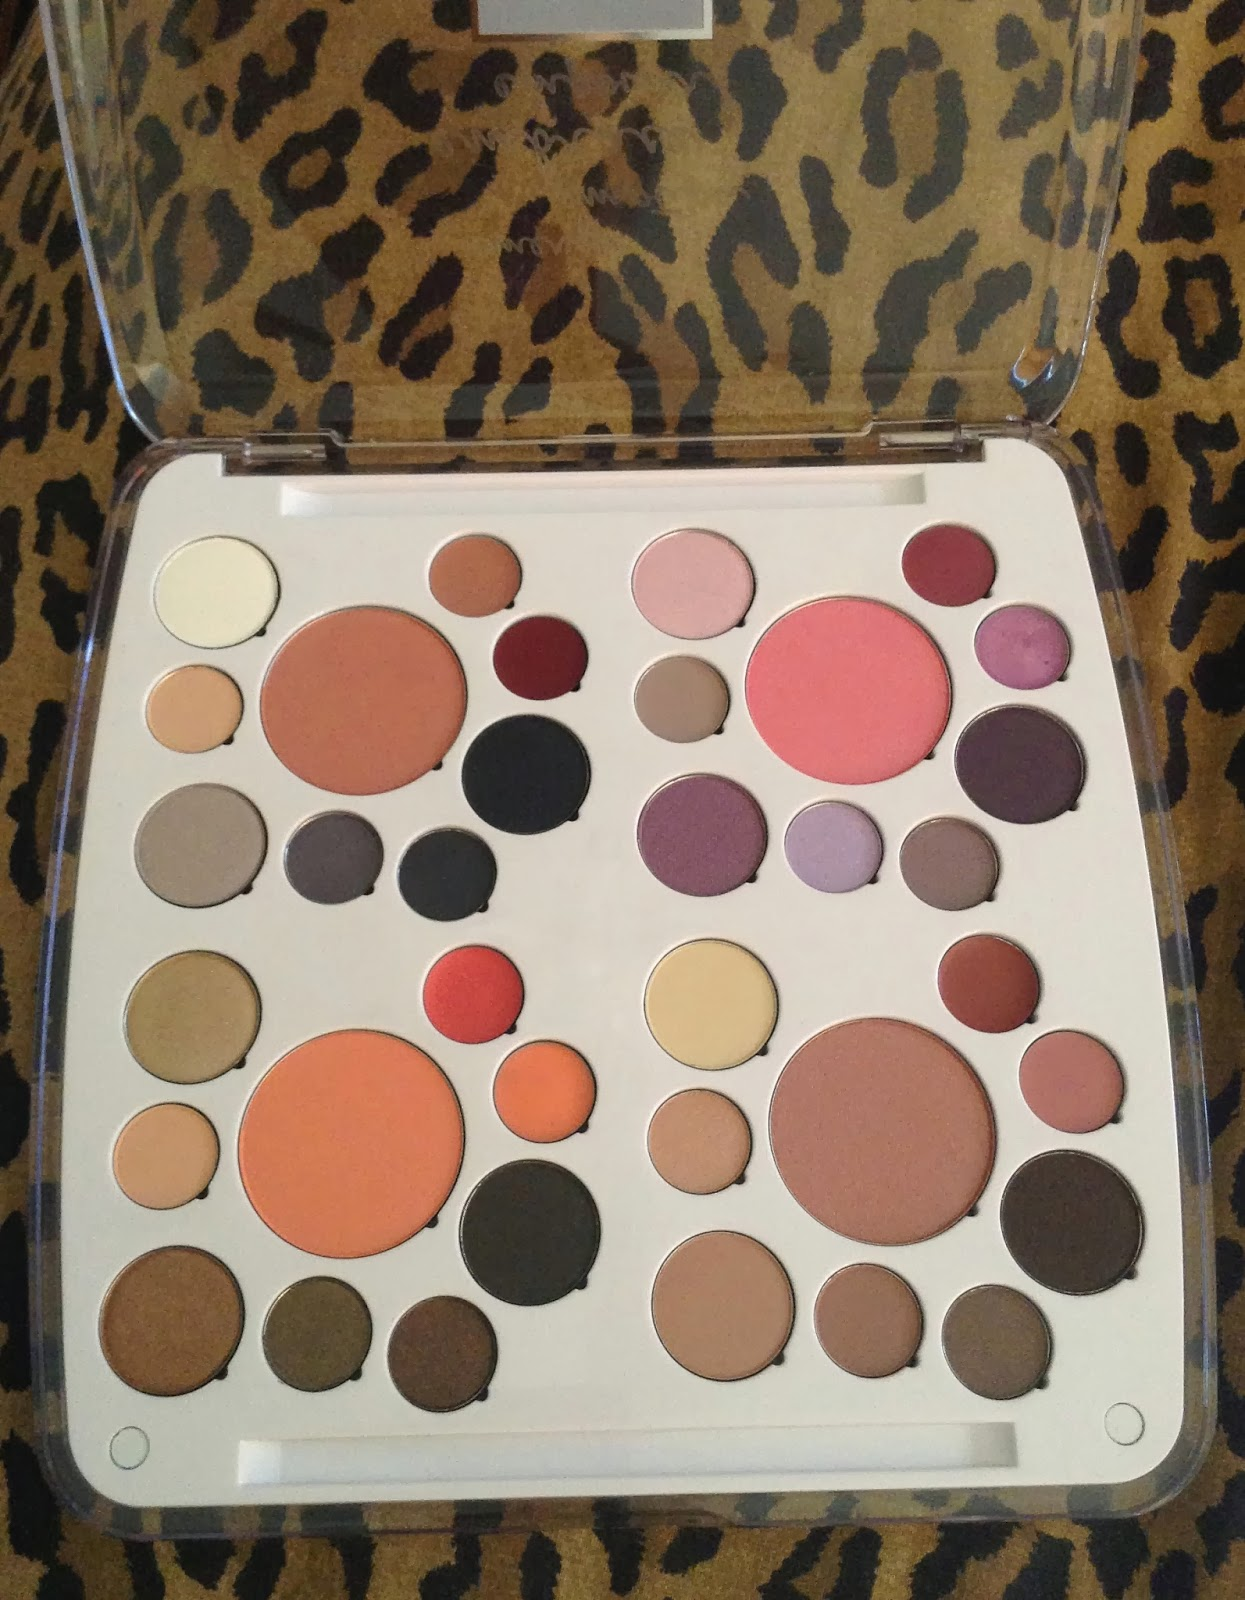 strawberryxjammie em cosmetics by michelle phan career life this is the em cosmetics life palette in career life